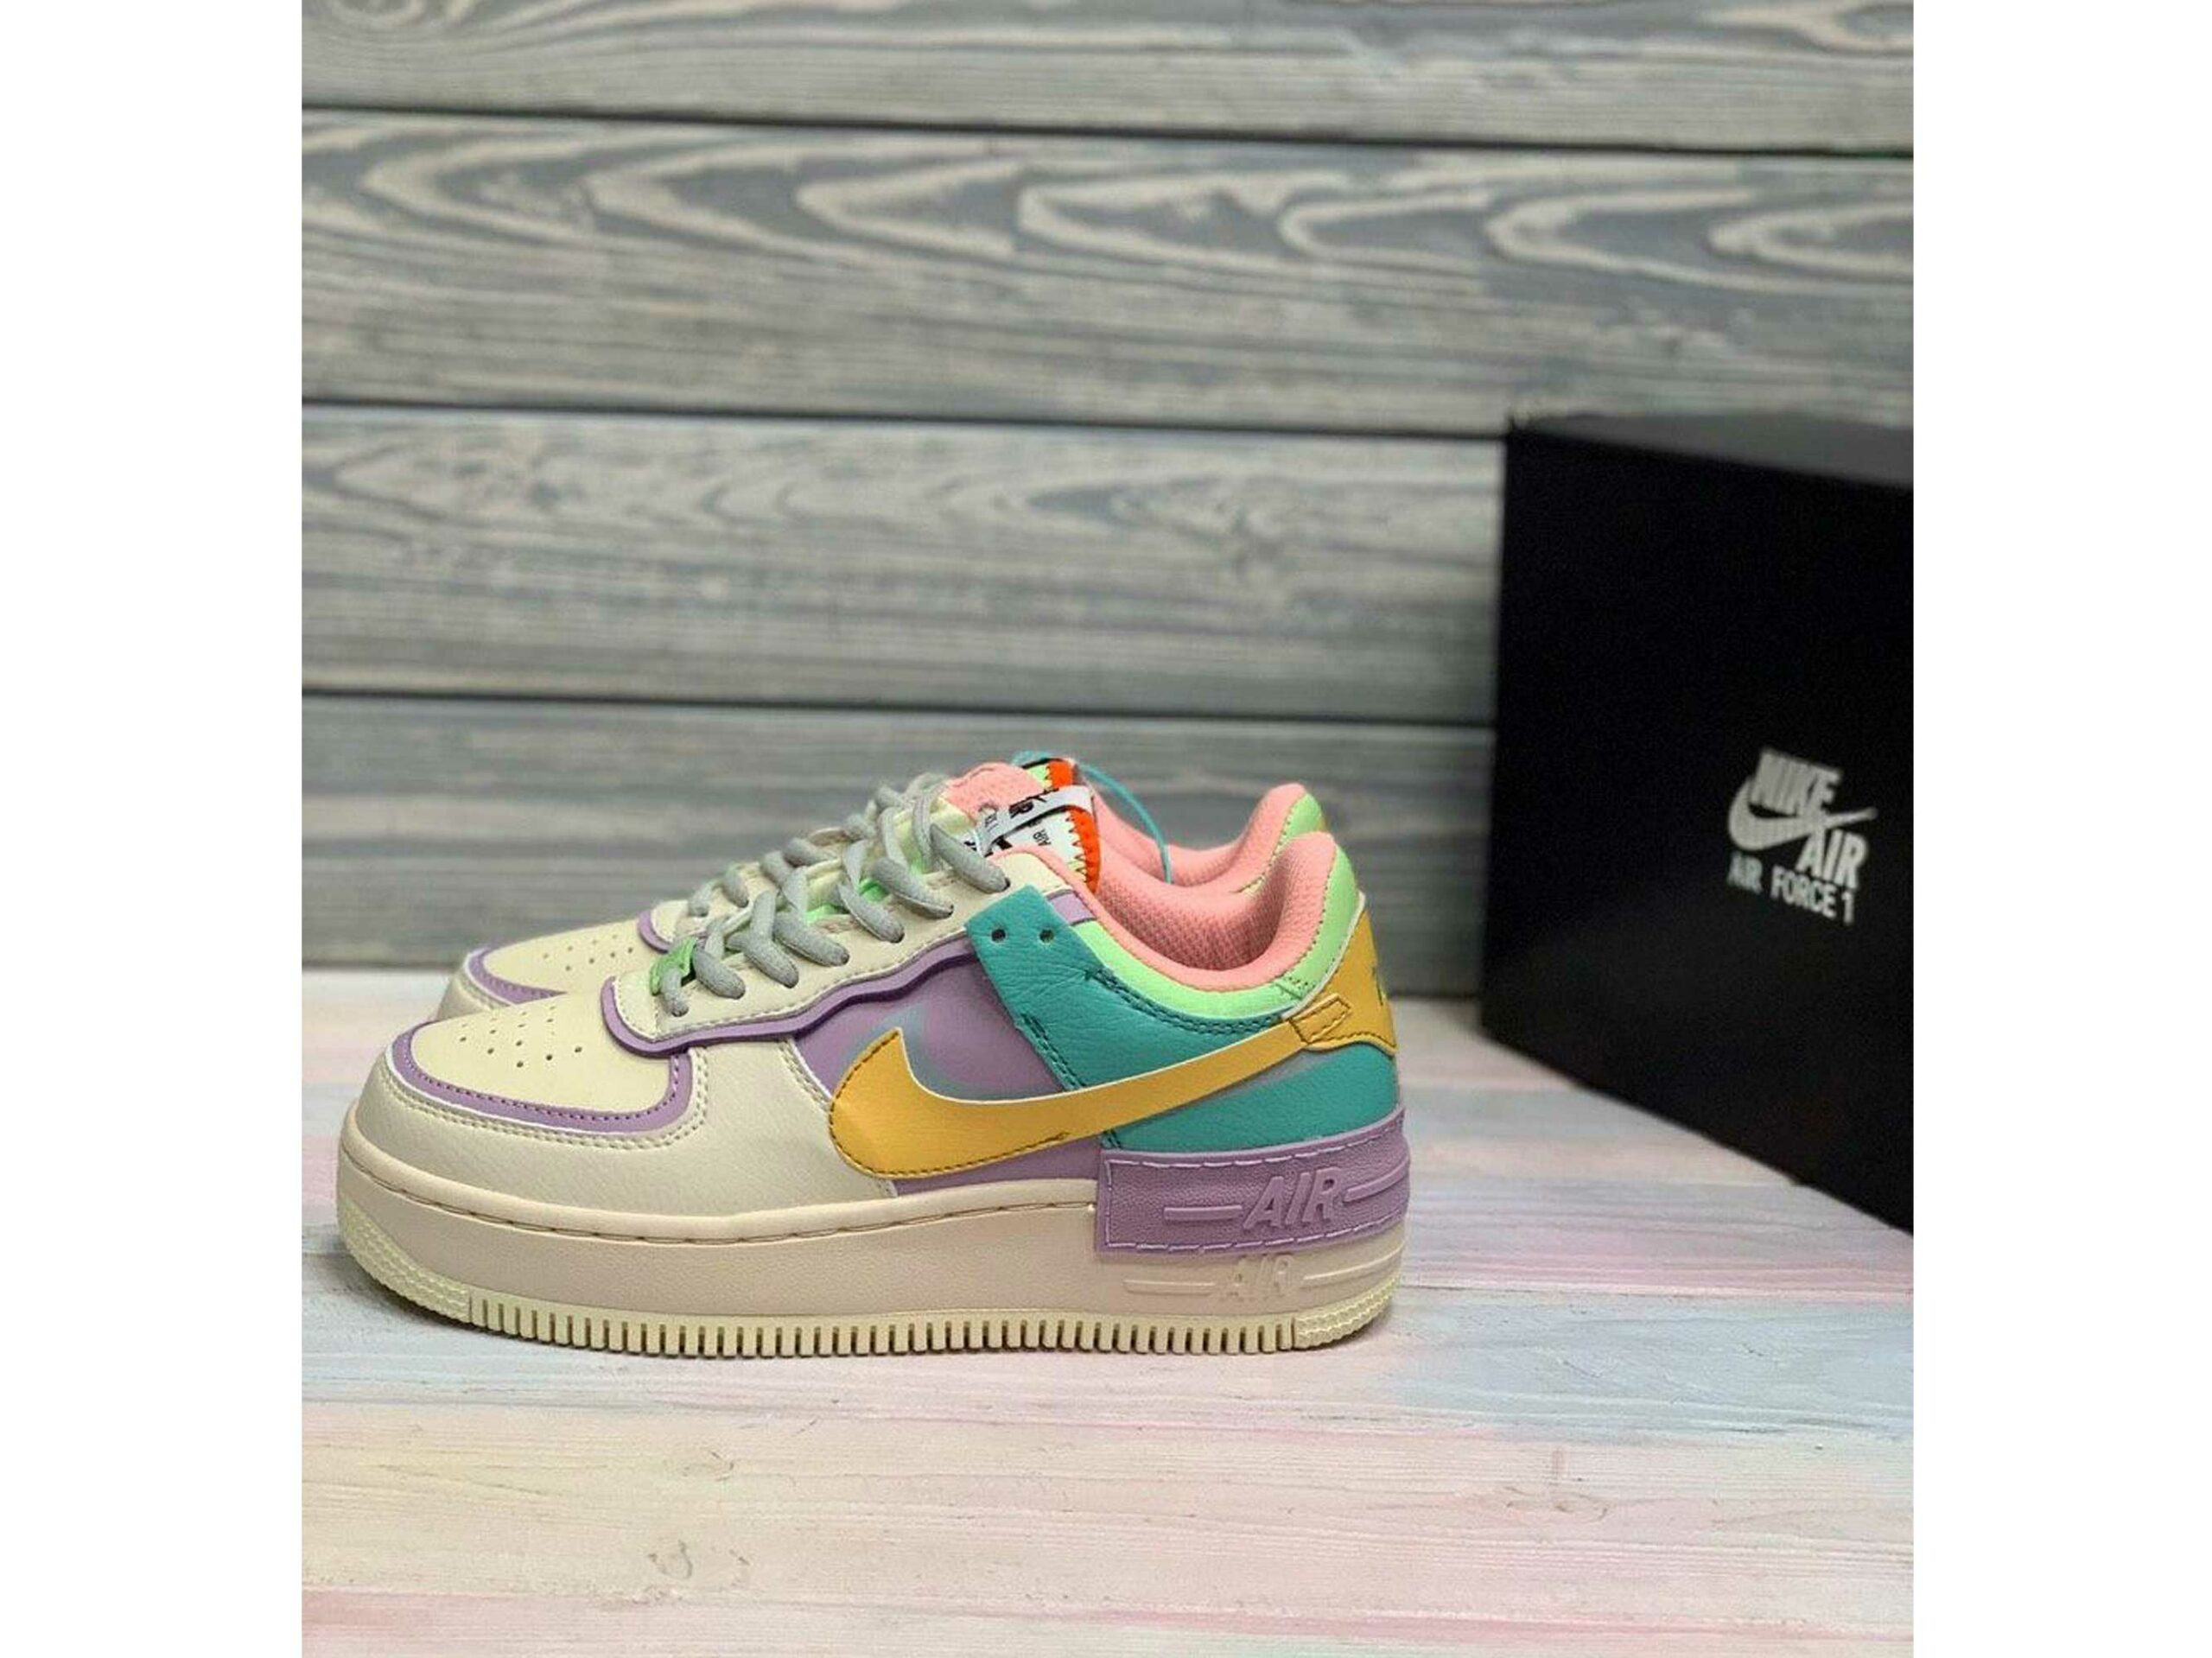 Nike Air Force 1 Shadow Pastel Multi Ci0919 101 Krossovki Sadovod